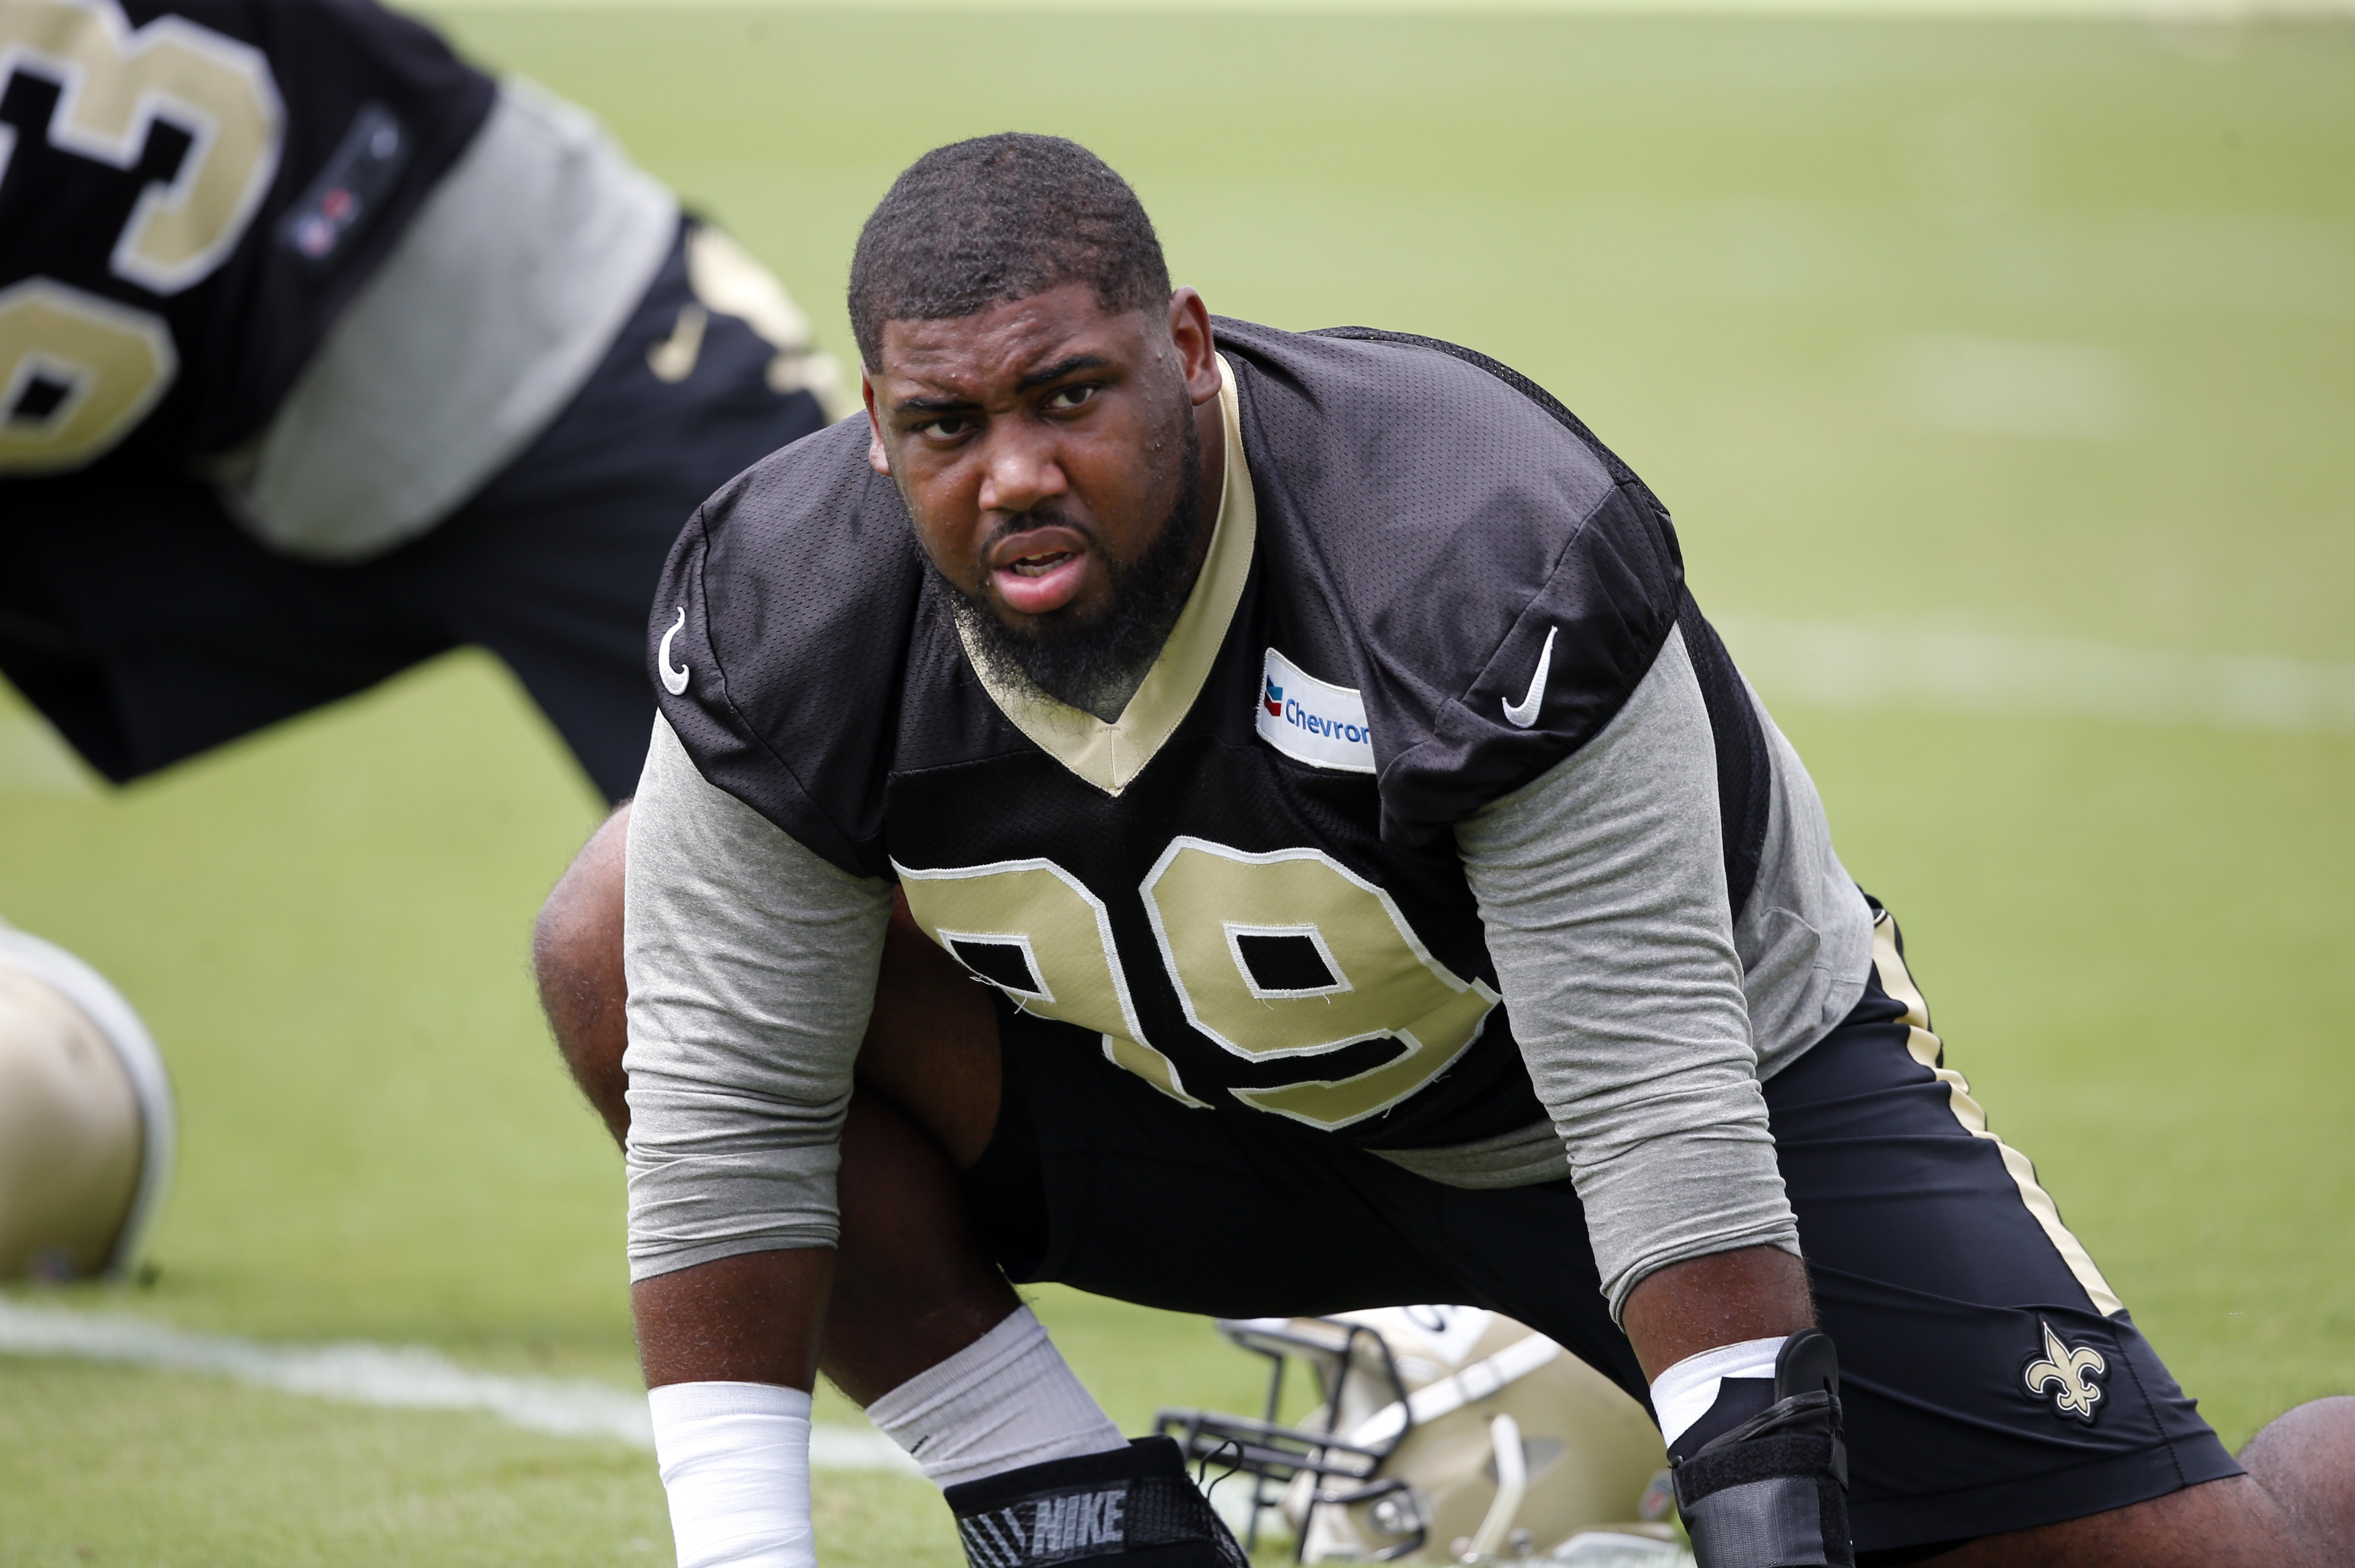 New Orleans Saints defensive tackle Sheldon Rankins (99) stretches during the NFL football team's minicamp in Metairie, La., Tuesday, June 14, 2016. (AP Photo/Gerald Herbert)